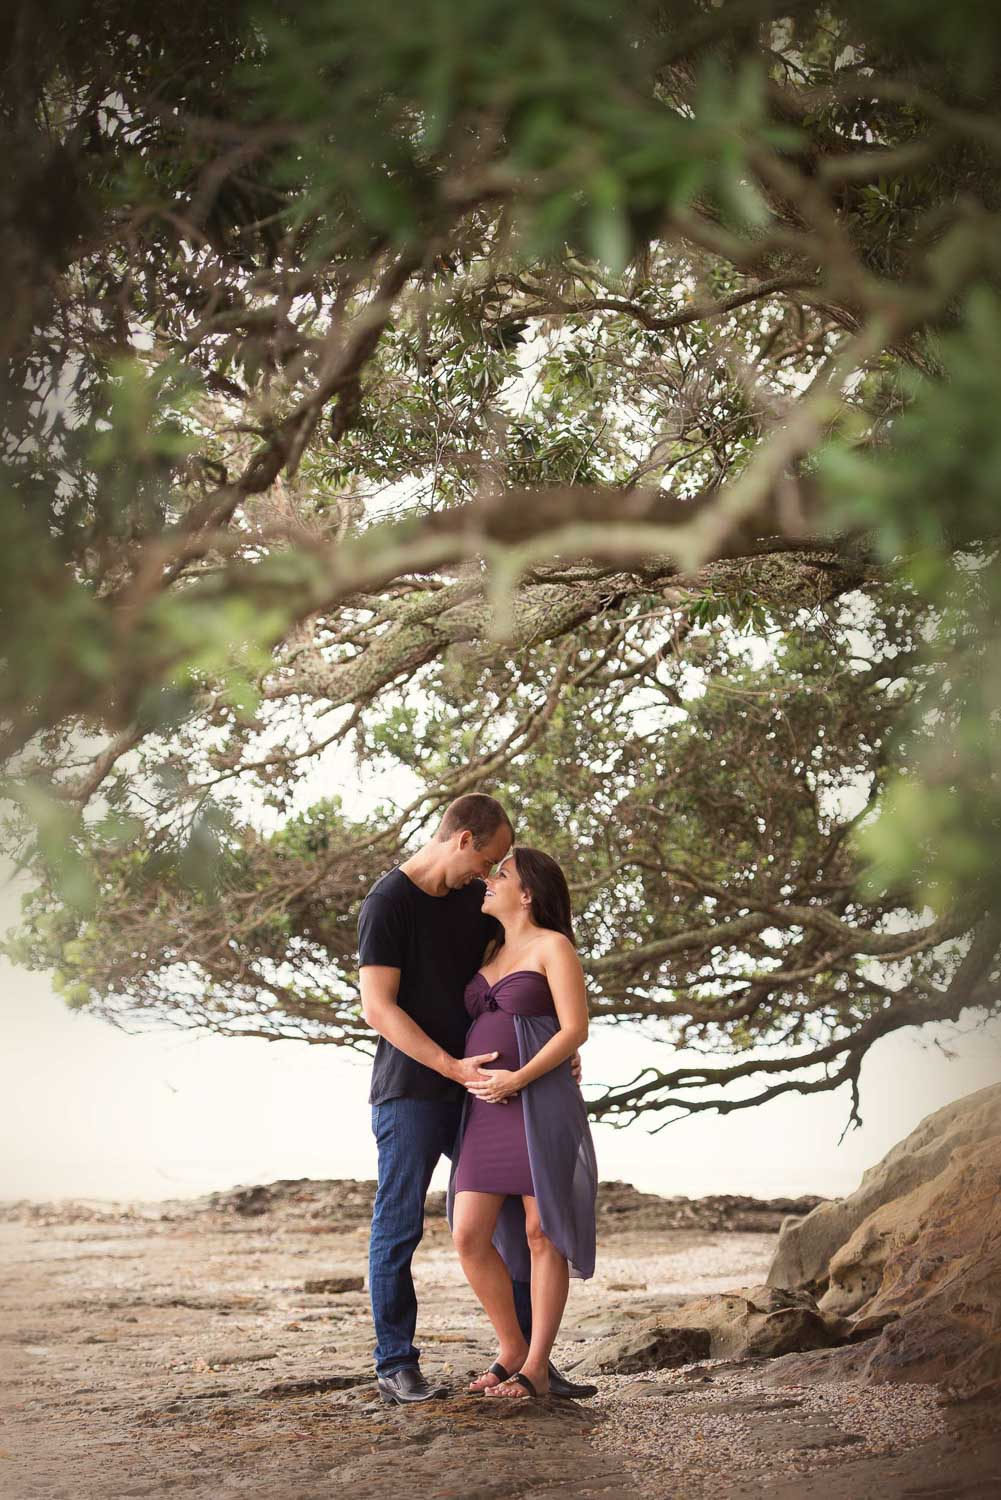 maternity photography by siobhan kelly photography